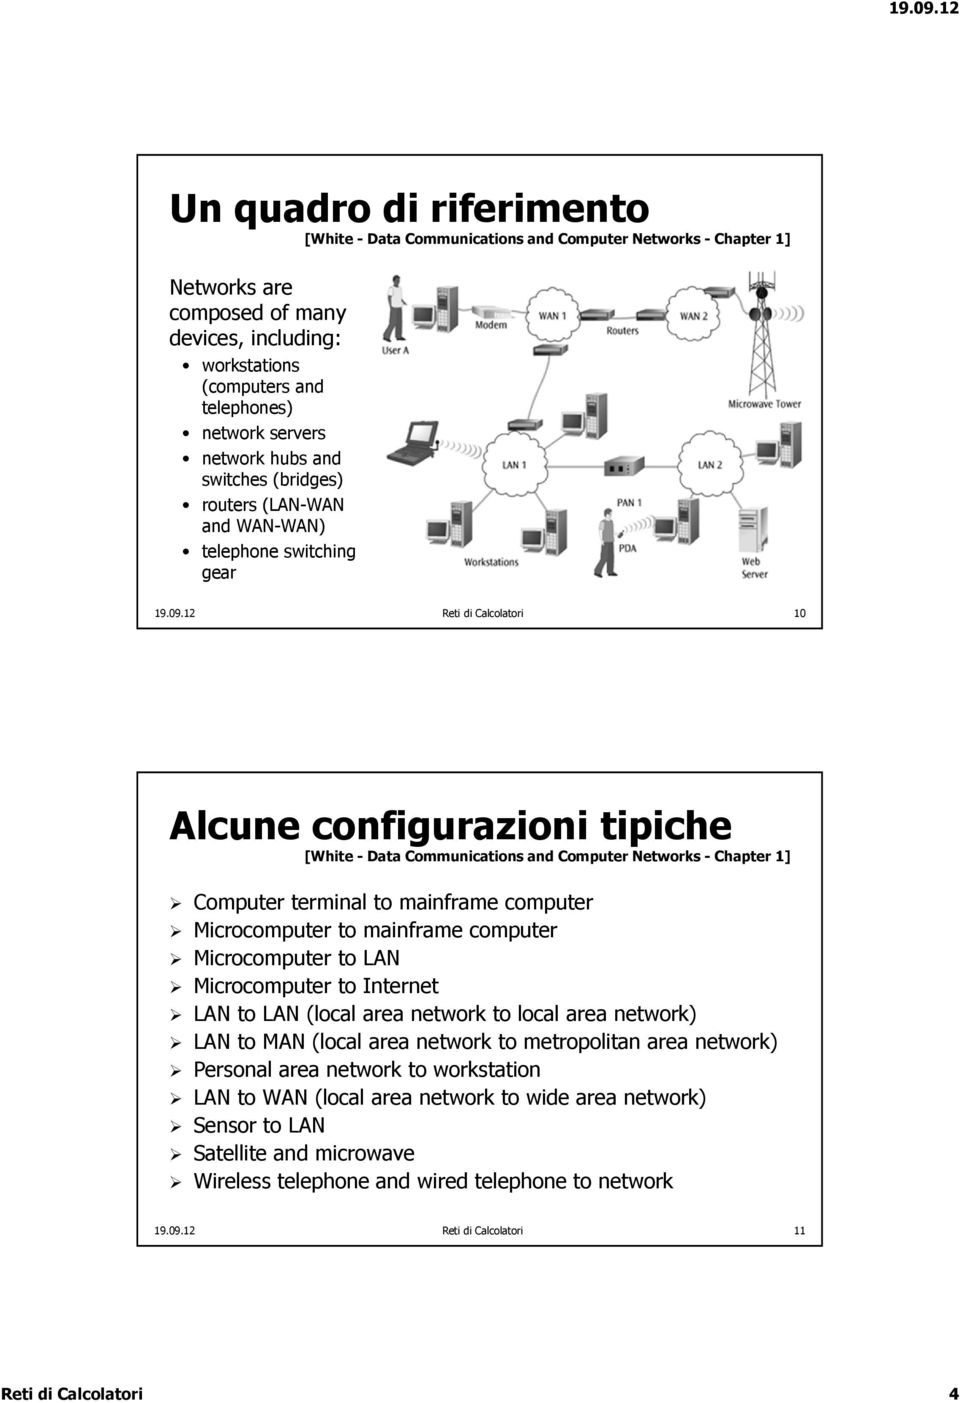 12 Reti di Calcolatori 10 Alcune configurazioni tipiche Computer terminal to mainframe computer Microcomputer to mainframe computer Microcomputer to LAN Microcomputer to Internet LAN to